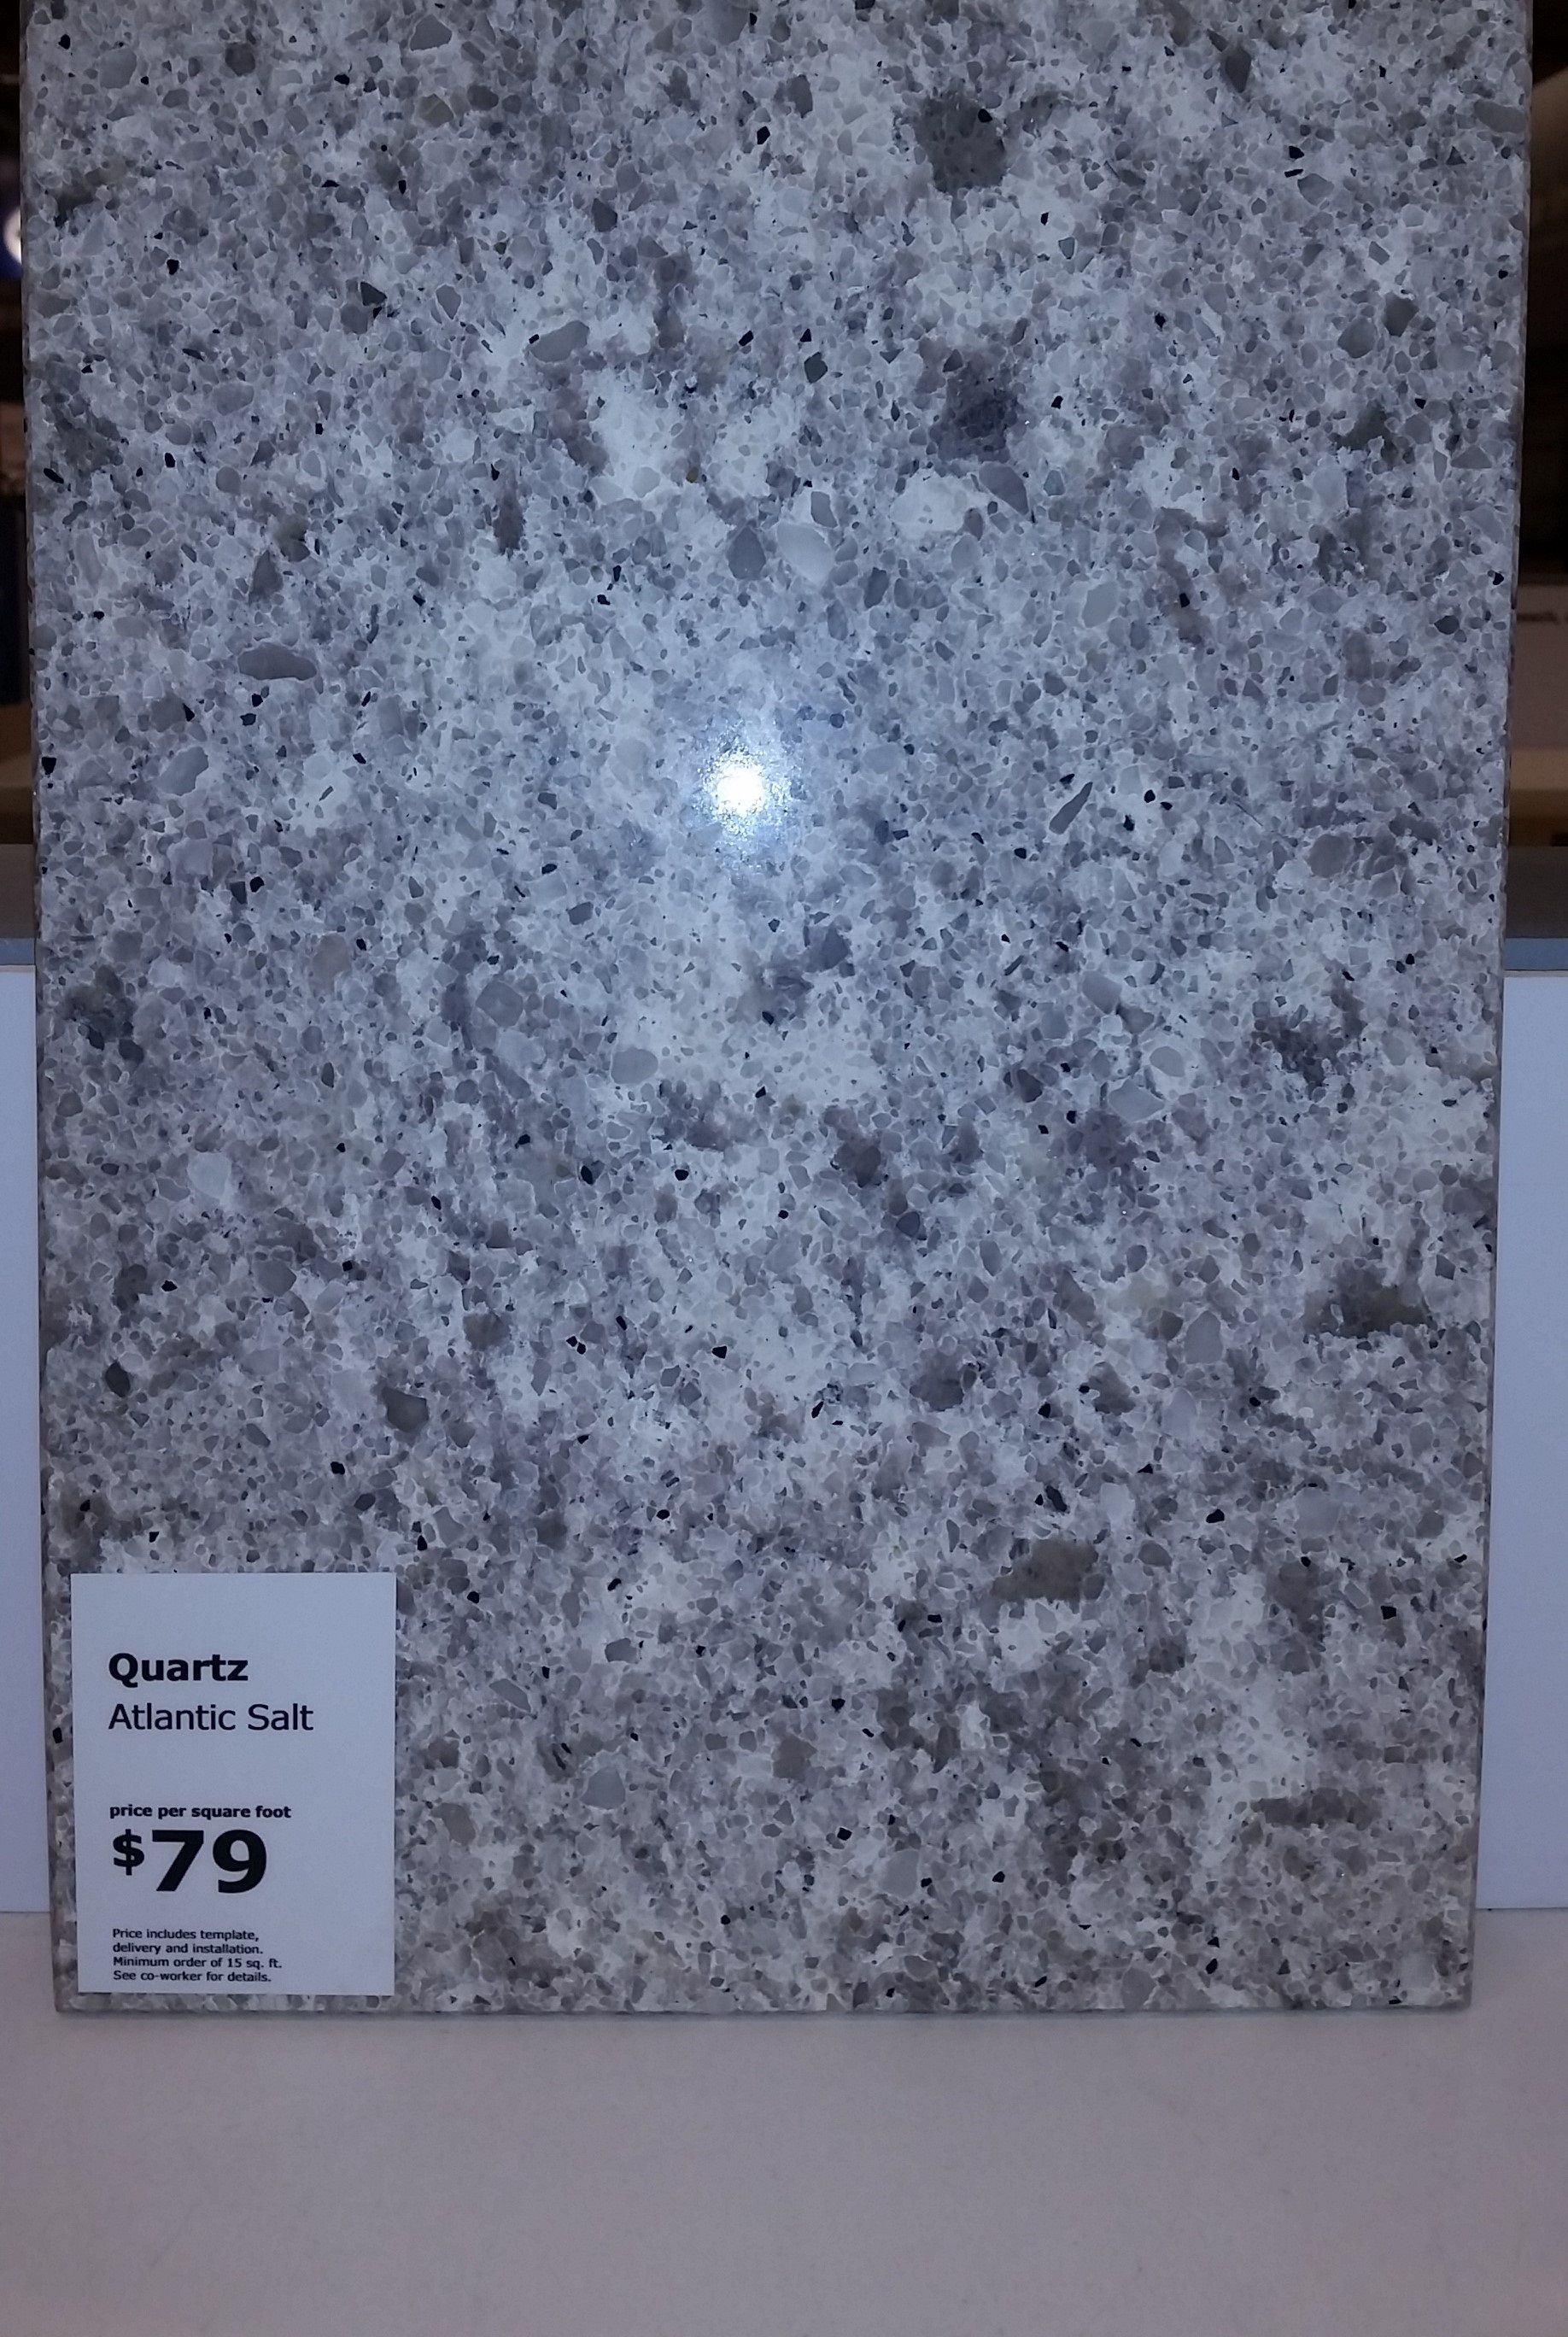 Ikea Atlantic Salt Quartz Countertop Total Cost 79 Per Square Foot